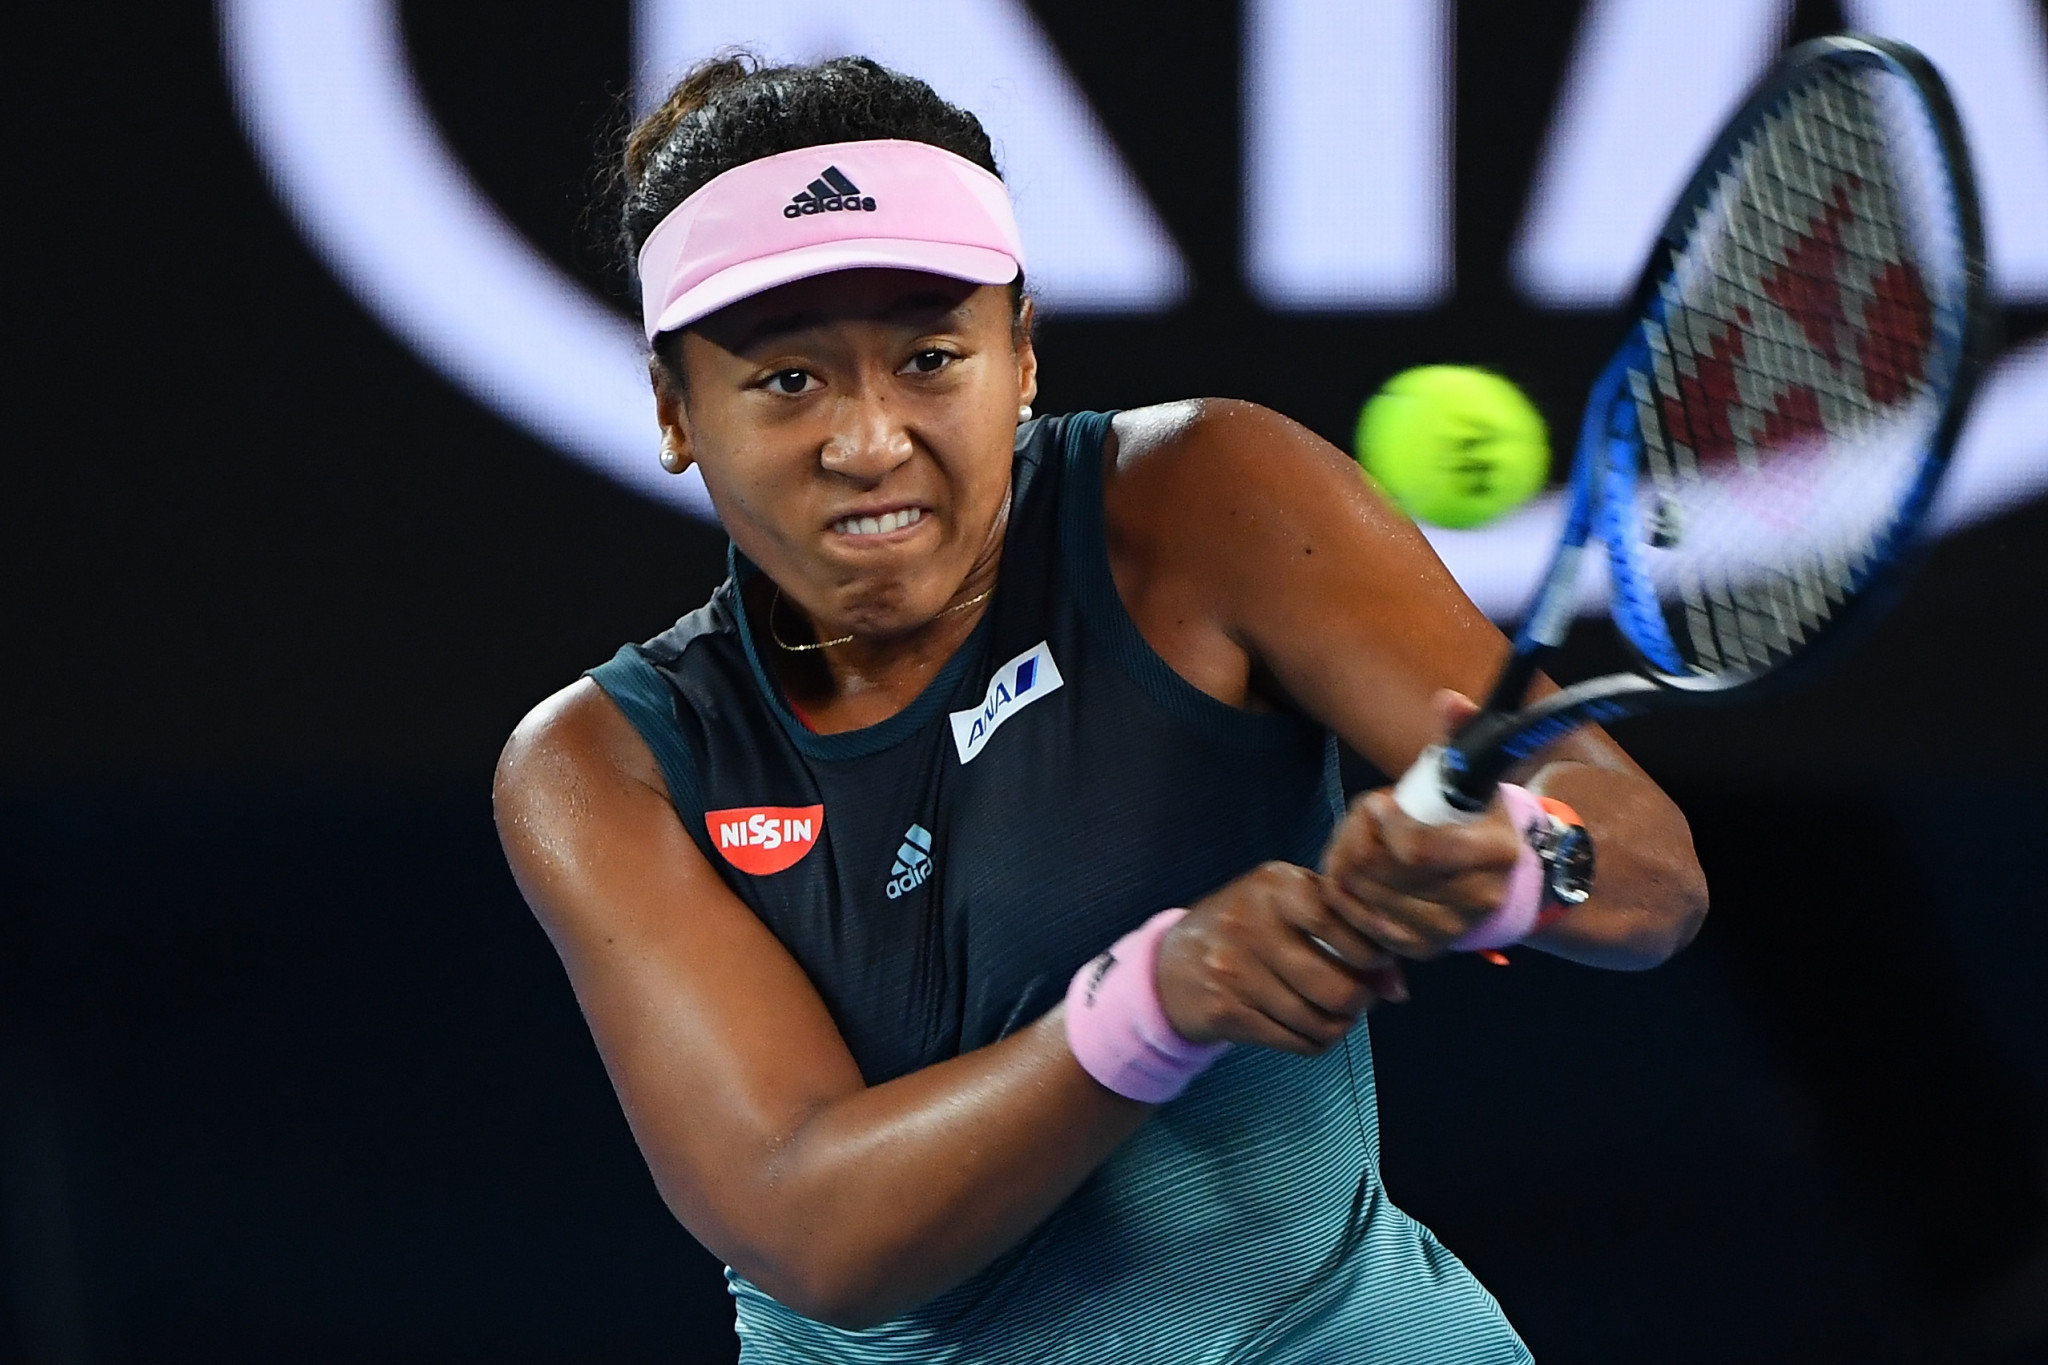 Japan's Naomi Osaka is through to a second consecutive Grand Slam final after beating Czech Republic's Karolína Plíšková in the last four ©Getty Images